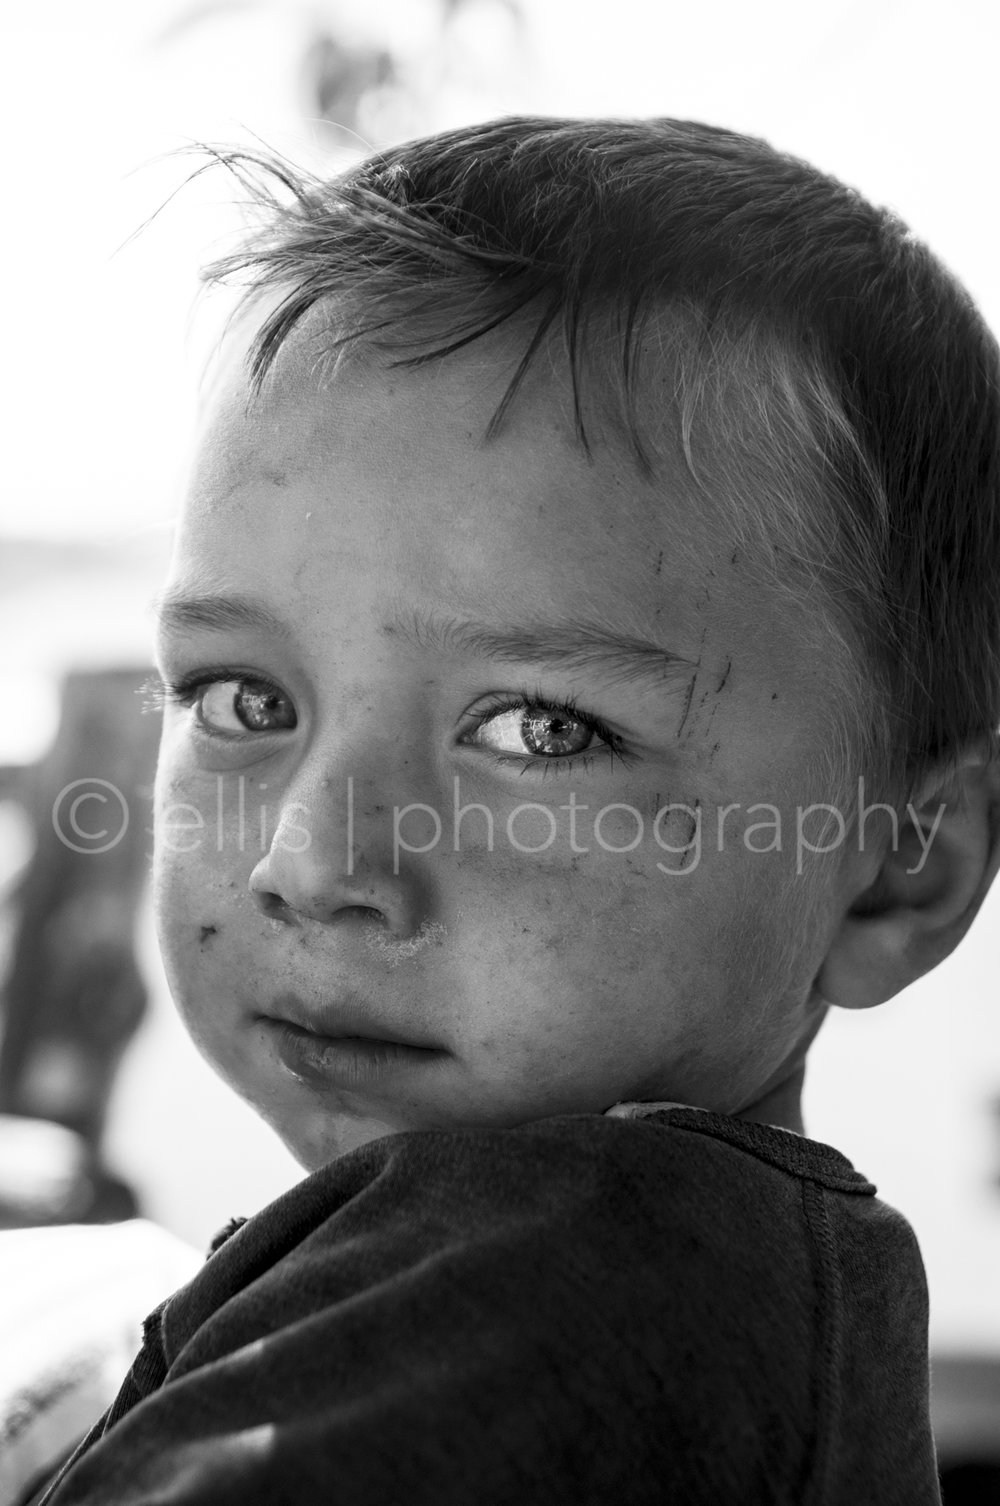 Very cute little boy. Portrait of a Romanian boy with beautiful big eyes looking into the camera. Although he is pretty dirty, his eyes get all the attention. Black and white photography by Ellis Peeters Photography for Portraits of a Romanian Family - daily life photography.